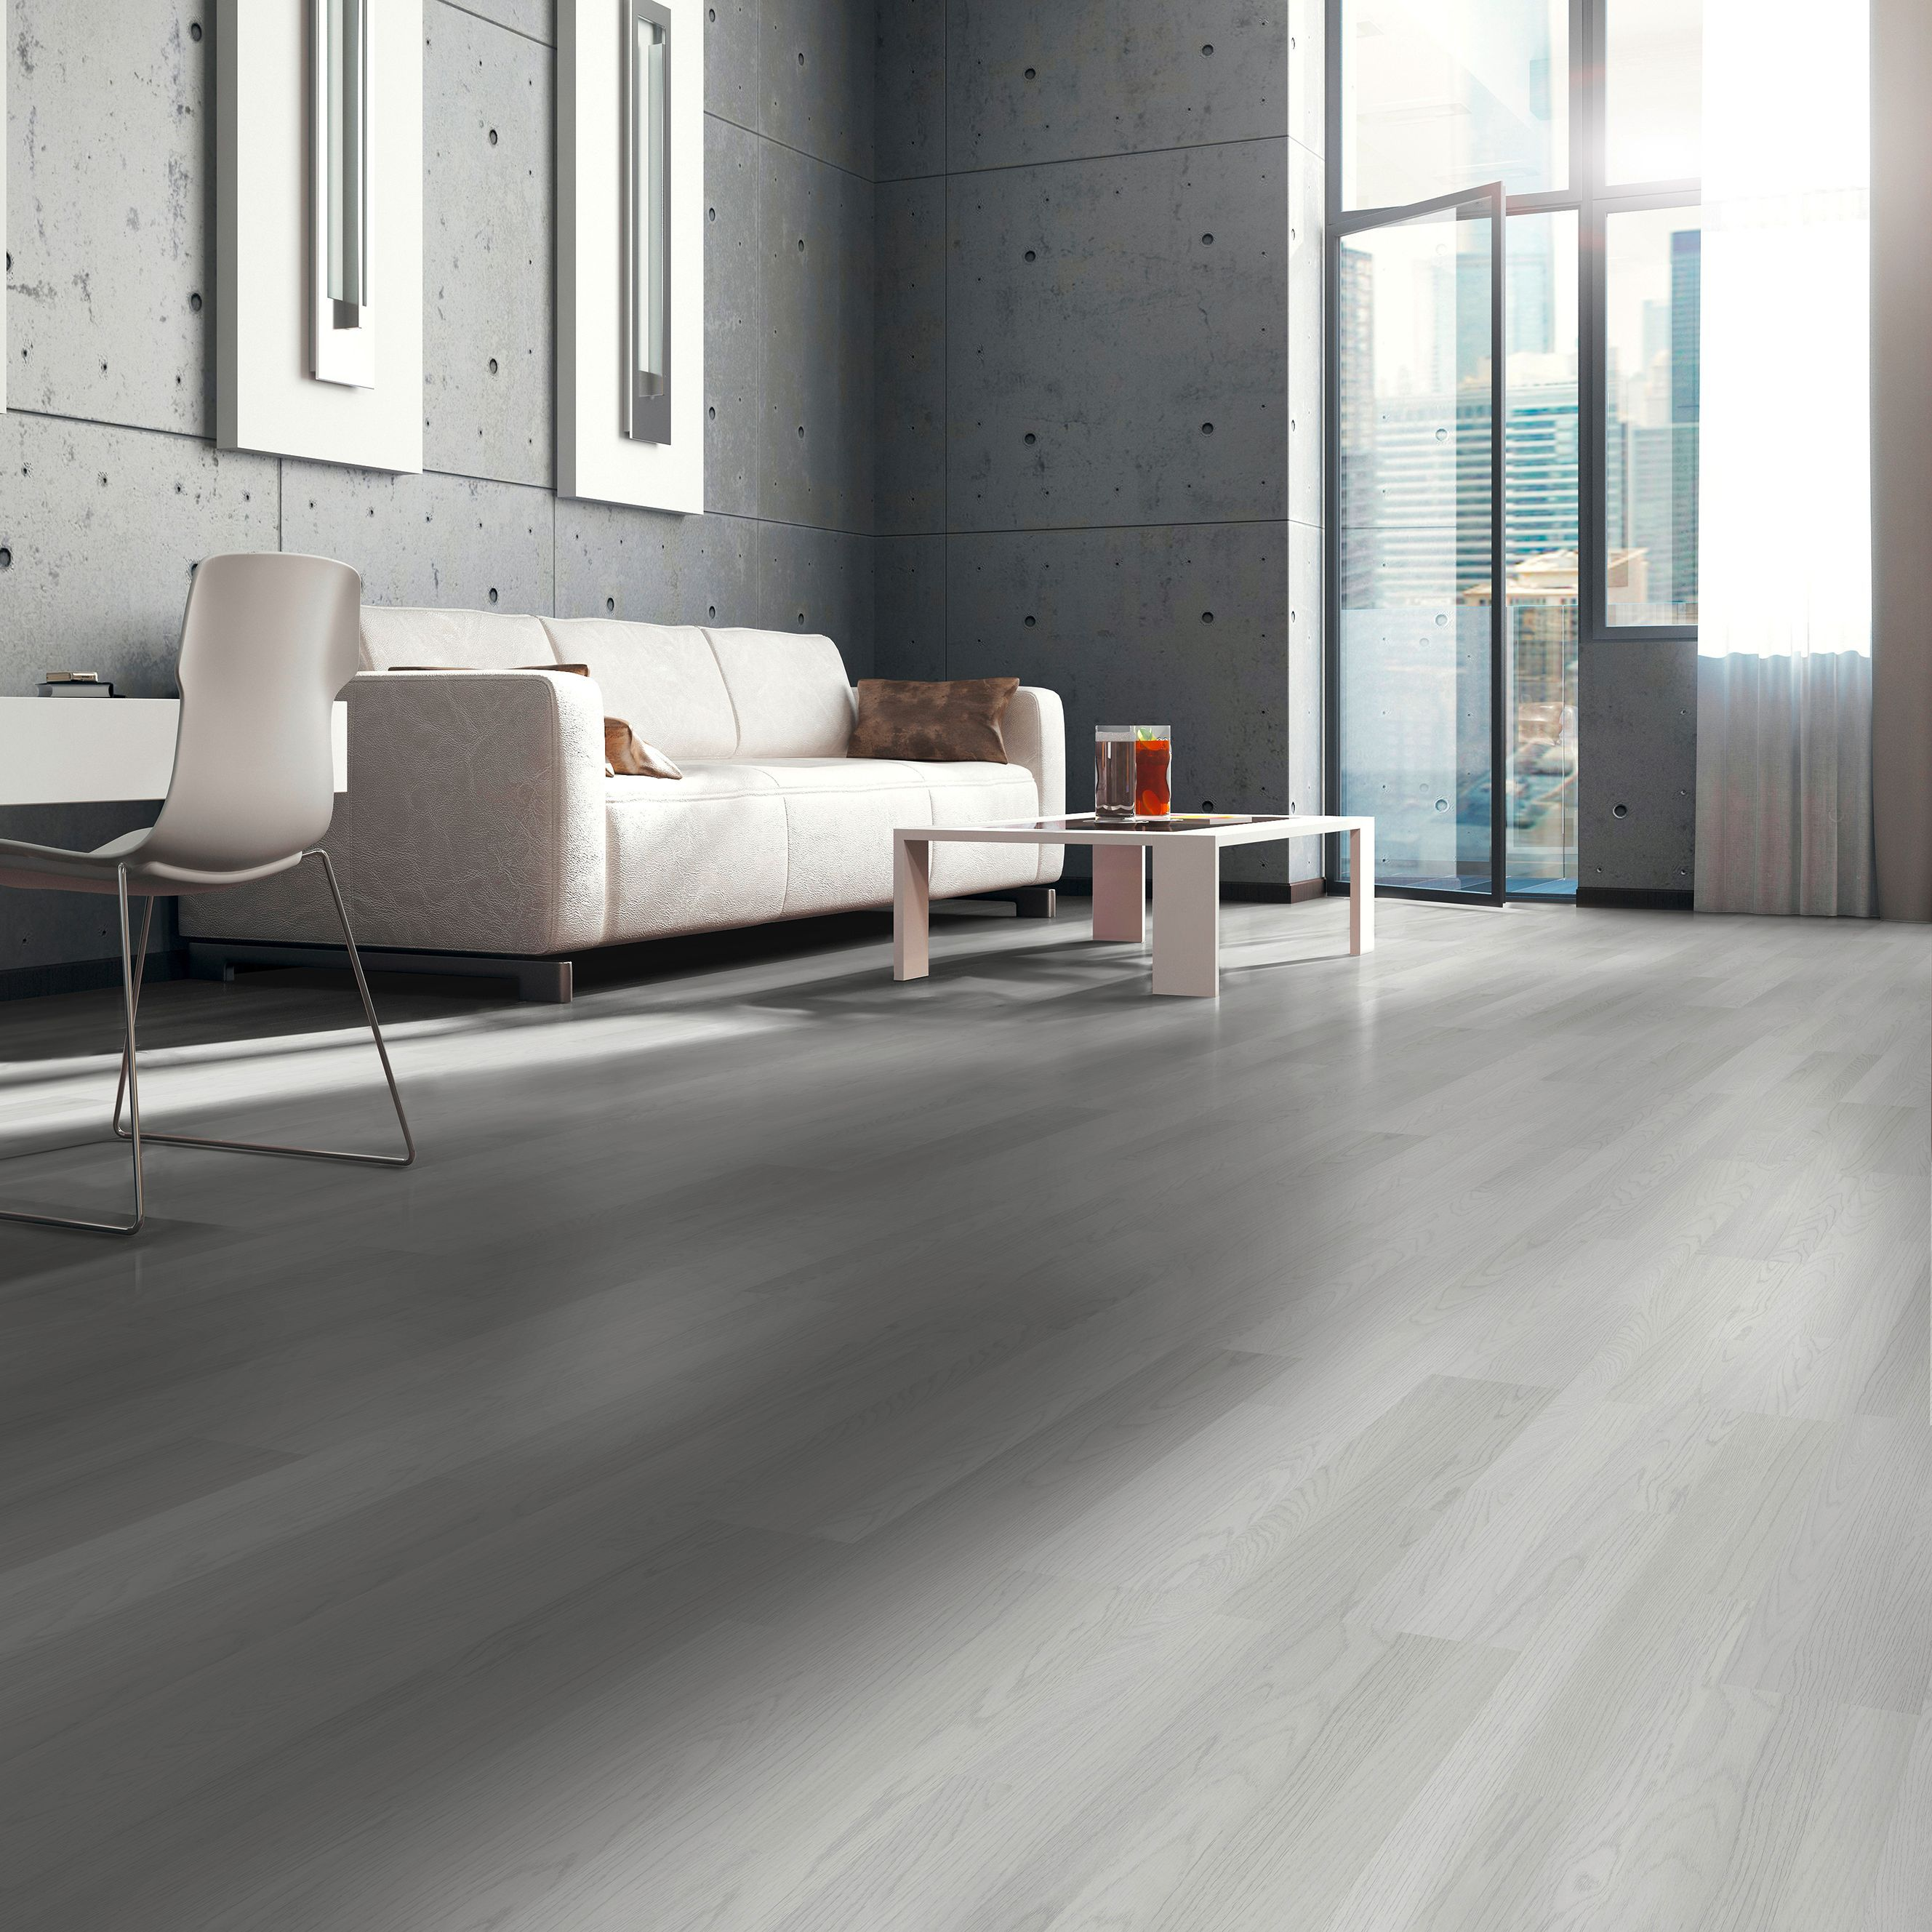 whitewash oak furniture. Whitewash Oak White Wood Effect Laminate Flooring 3 M² Pack | Departments TradePoint Furniture S